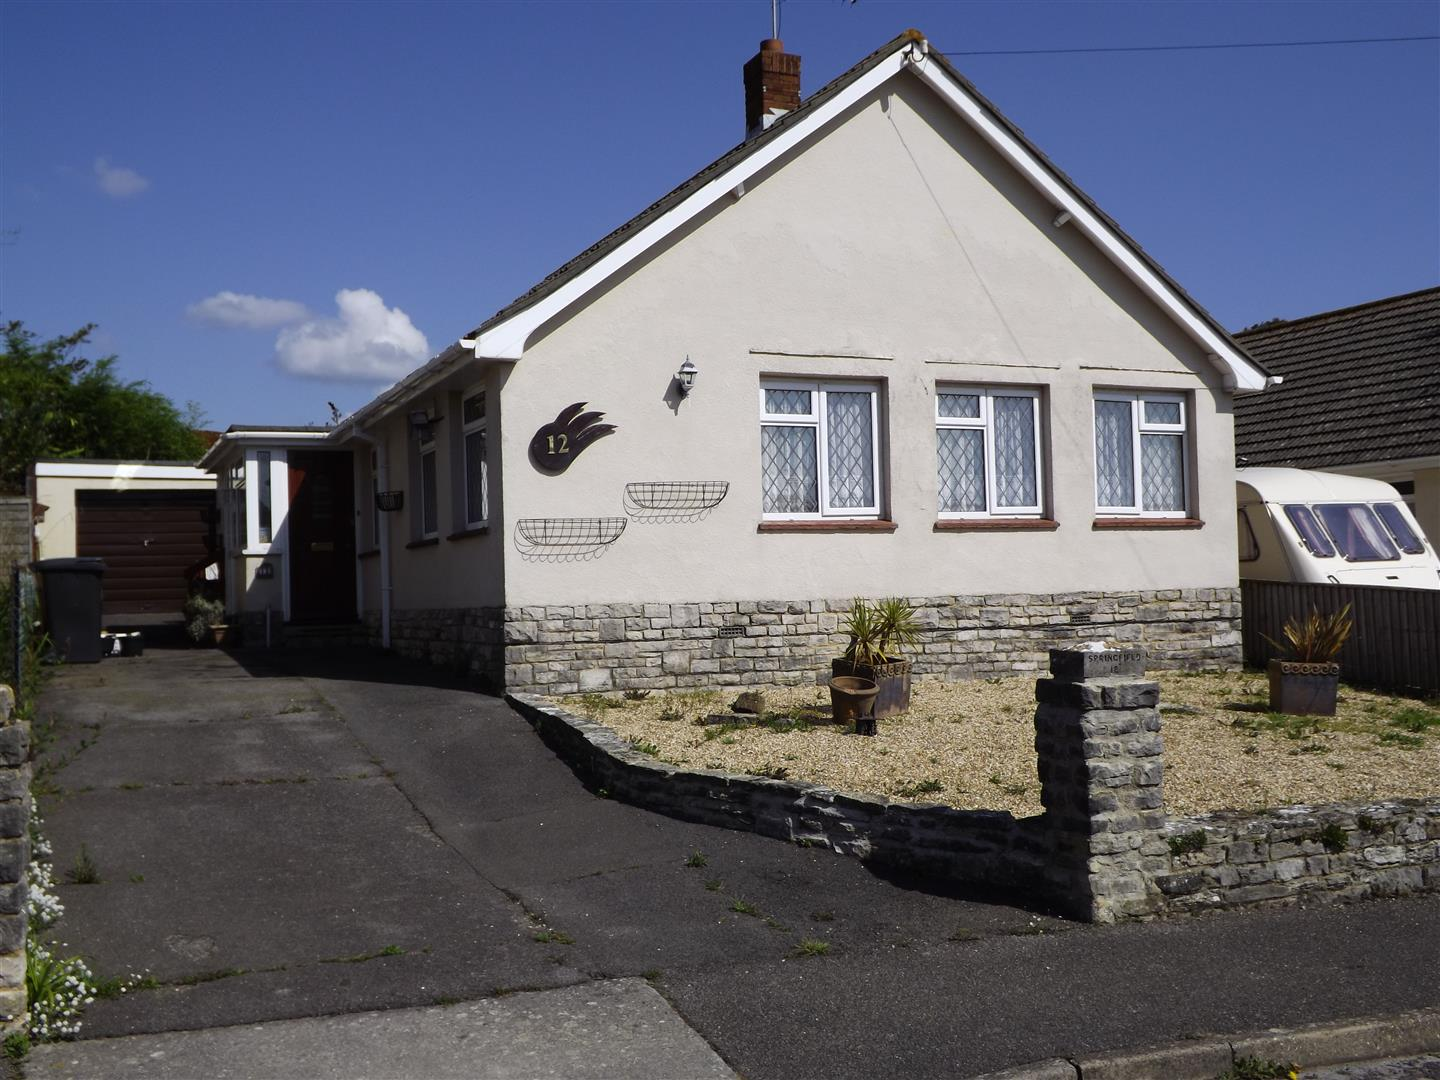 2 Bedrooms Detached Bungalow for sale in Prospect Crescent, Swanage